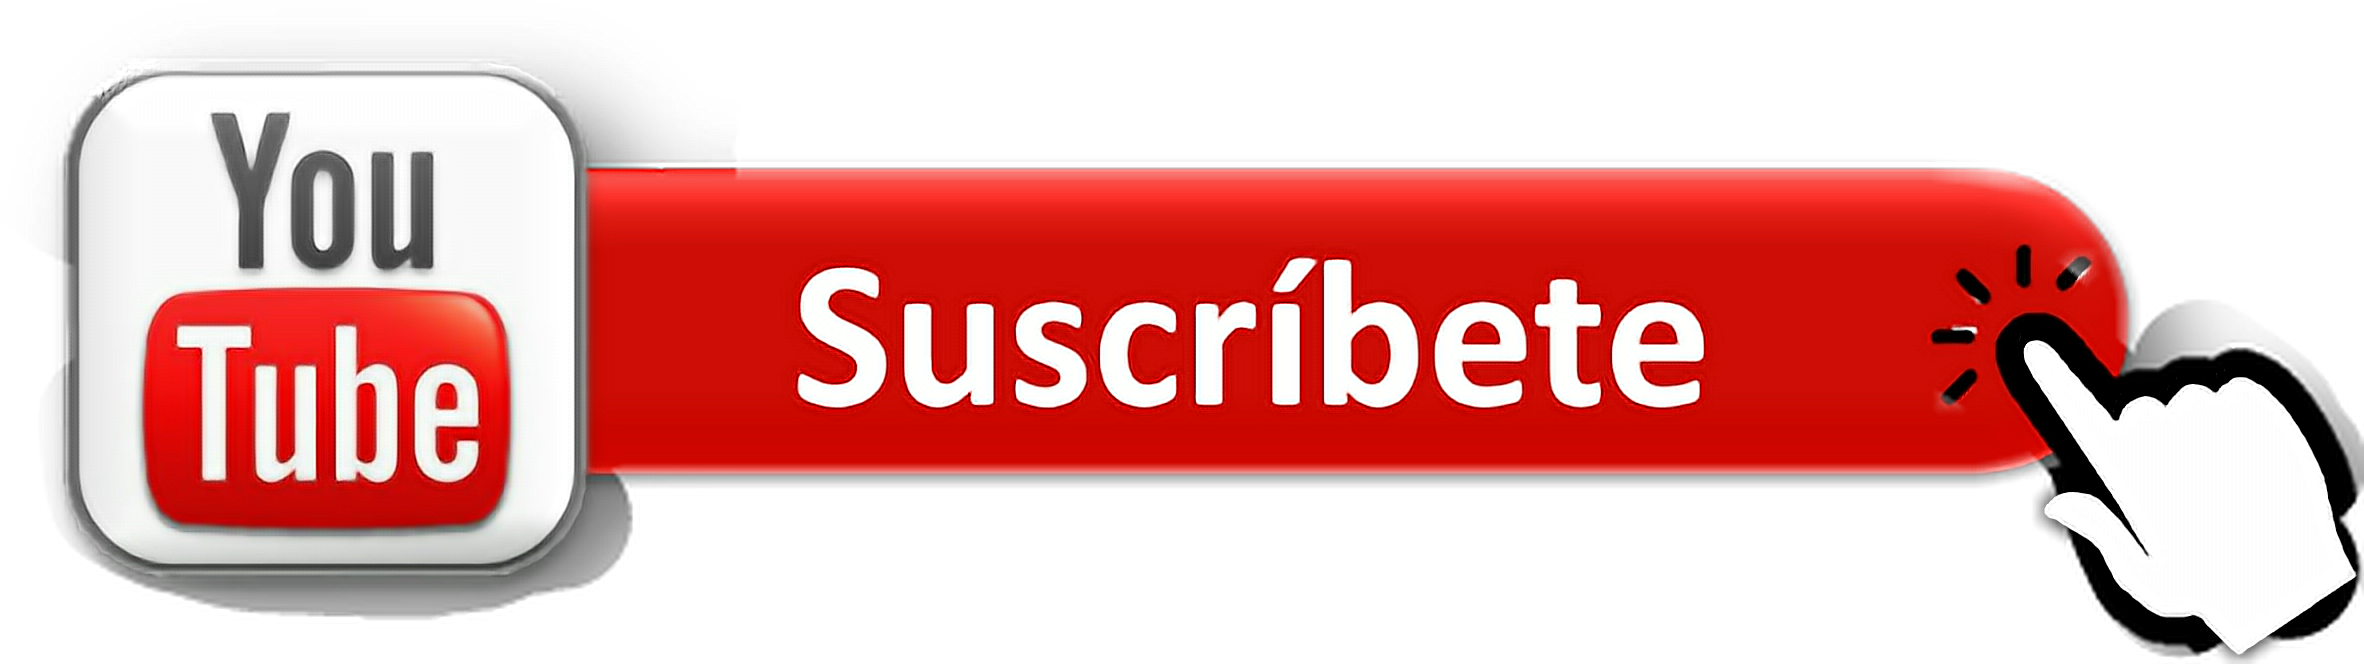 Subscribe boton tumblr hipster. Suscribete youtube png banner free library